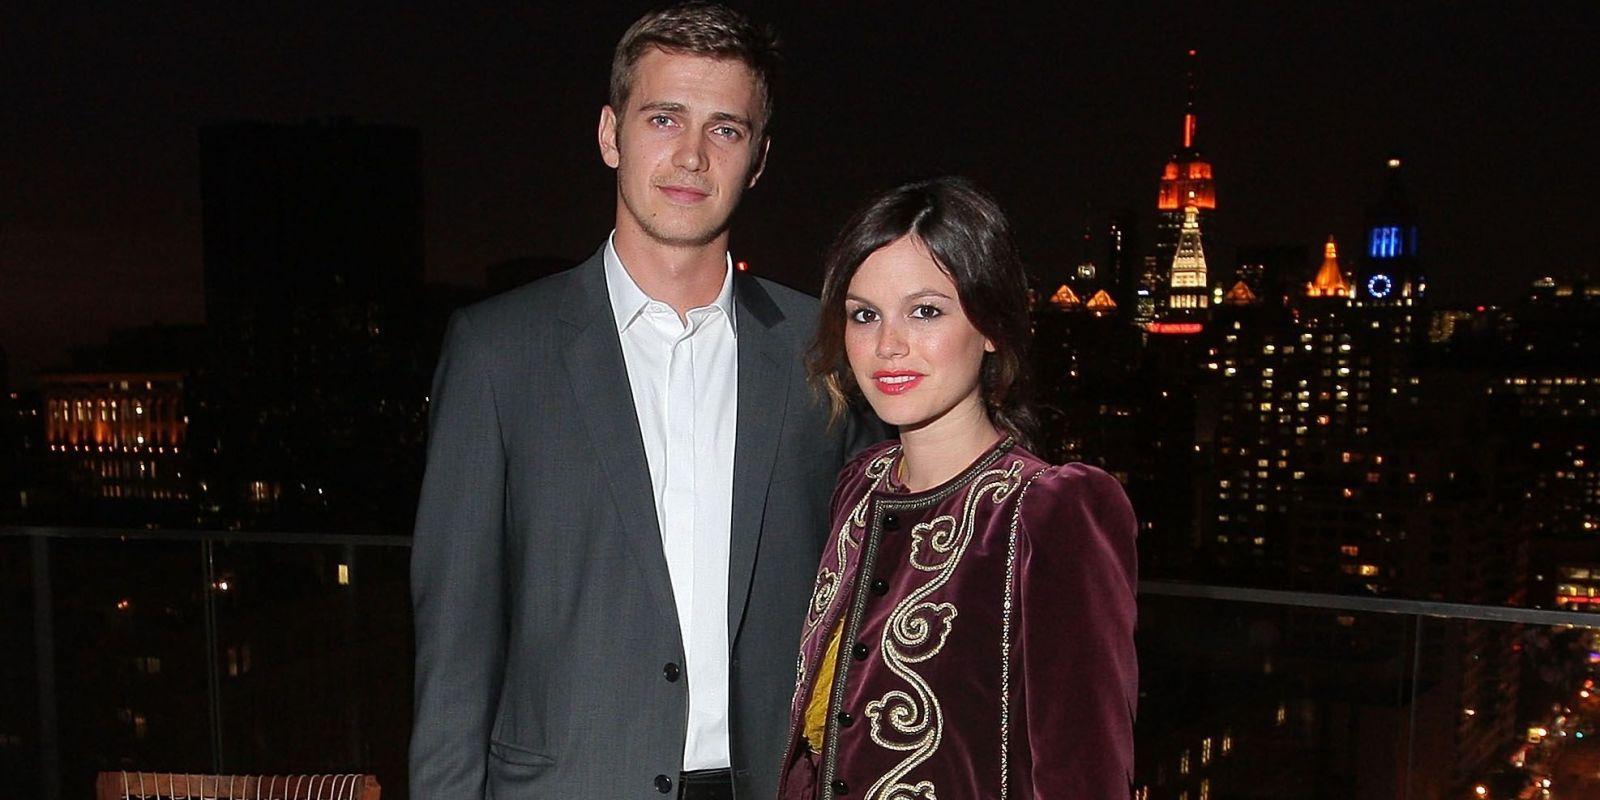 Rachel Bilson and Hayden Christensen have reportedly split after nearly 10 years https://t.co/qZwNPl4b30 https://t.co/m668YBl4qh